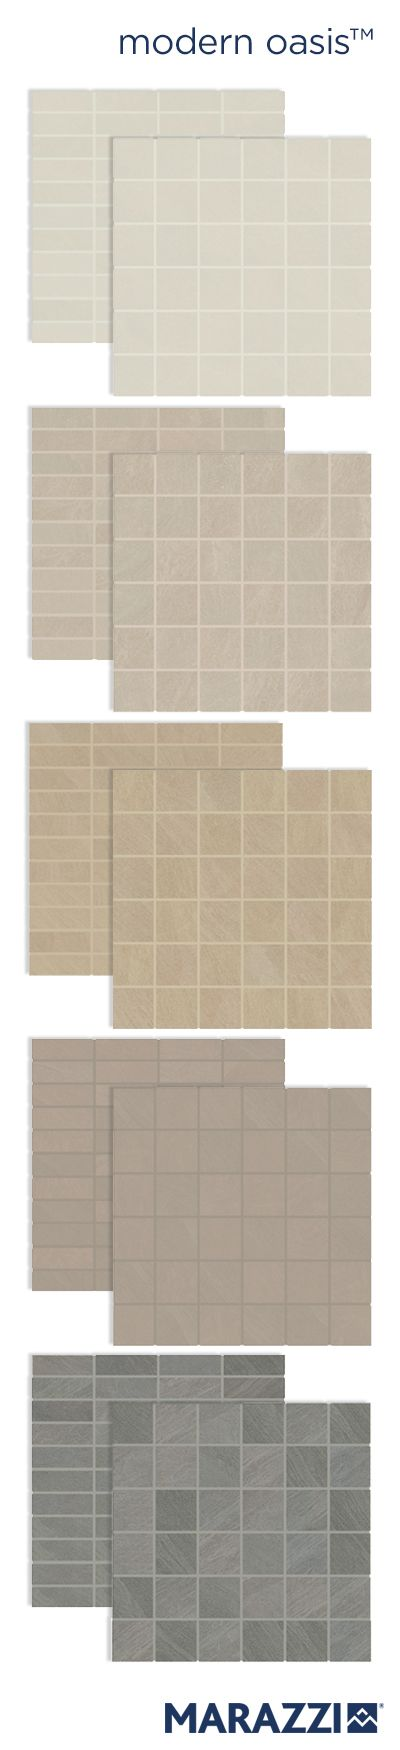 Monochromic shadings and texture resembling windswept sand dunes define the contemporary limestone vibe of Modern Oasis™. In addition to a coordinating floor tile, Modern Oasis is offered  in a square 2x2 mosaic and a stacked 1x3 mosaic. Both are available in Soft Cloud, Morning Haze, Desert Sand, Gentle Rain, and Stormy Sky.